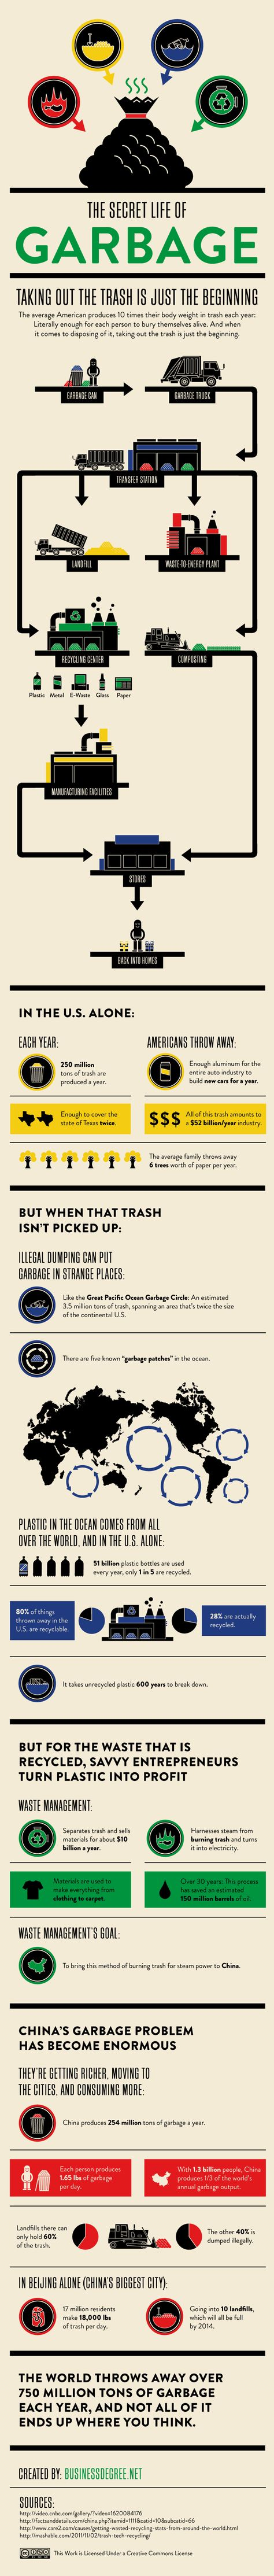 The Secret Life of Garbage #Infographic